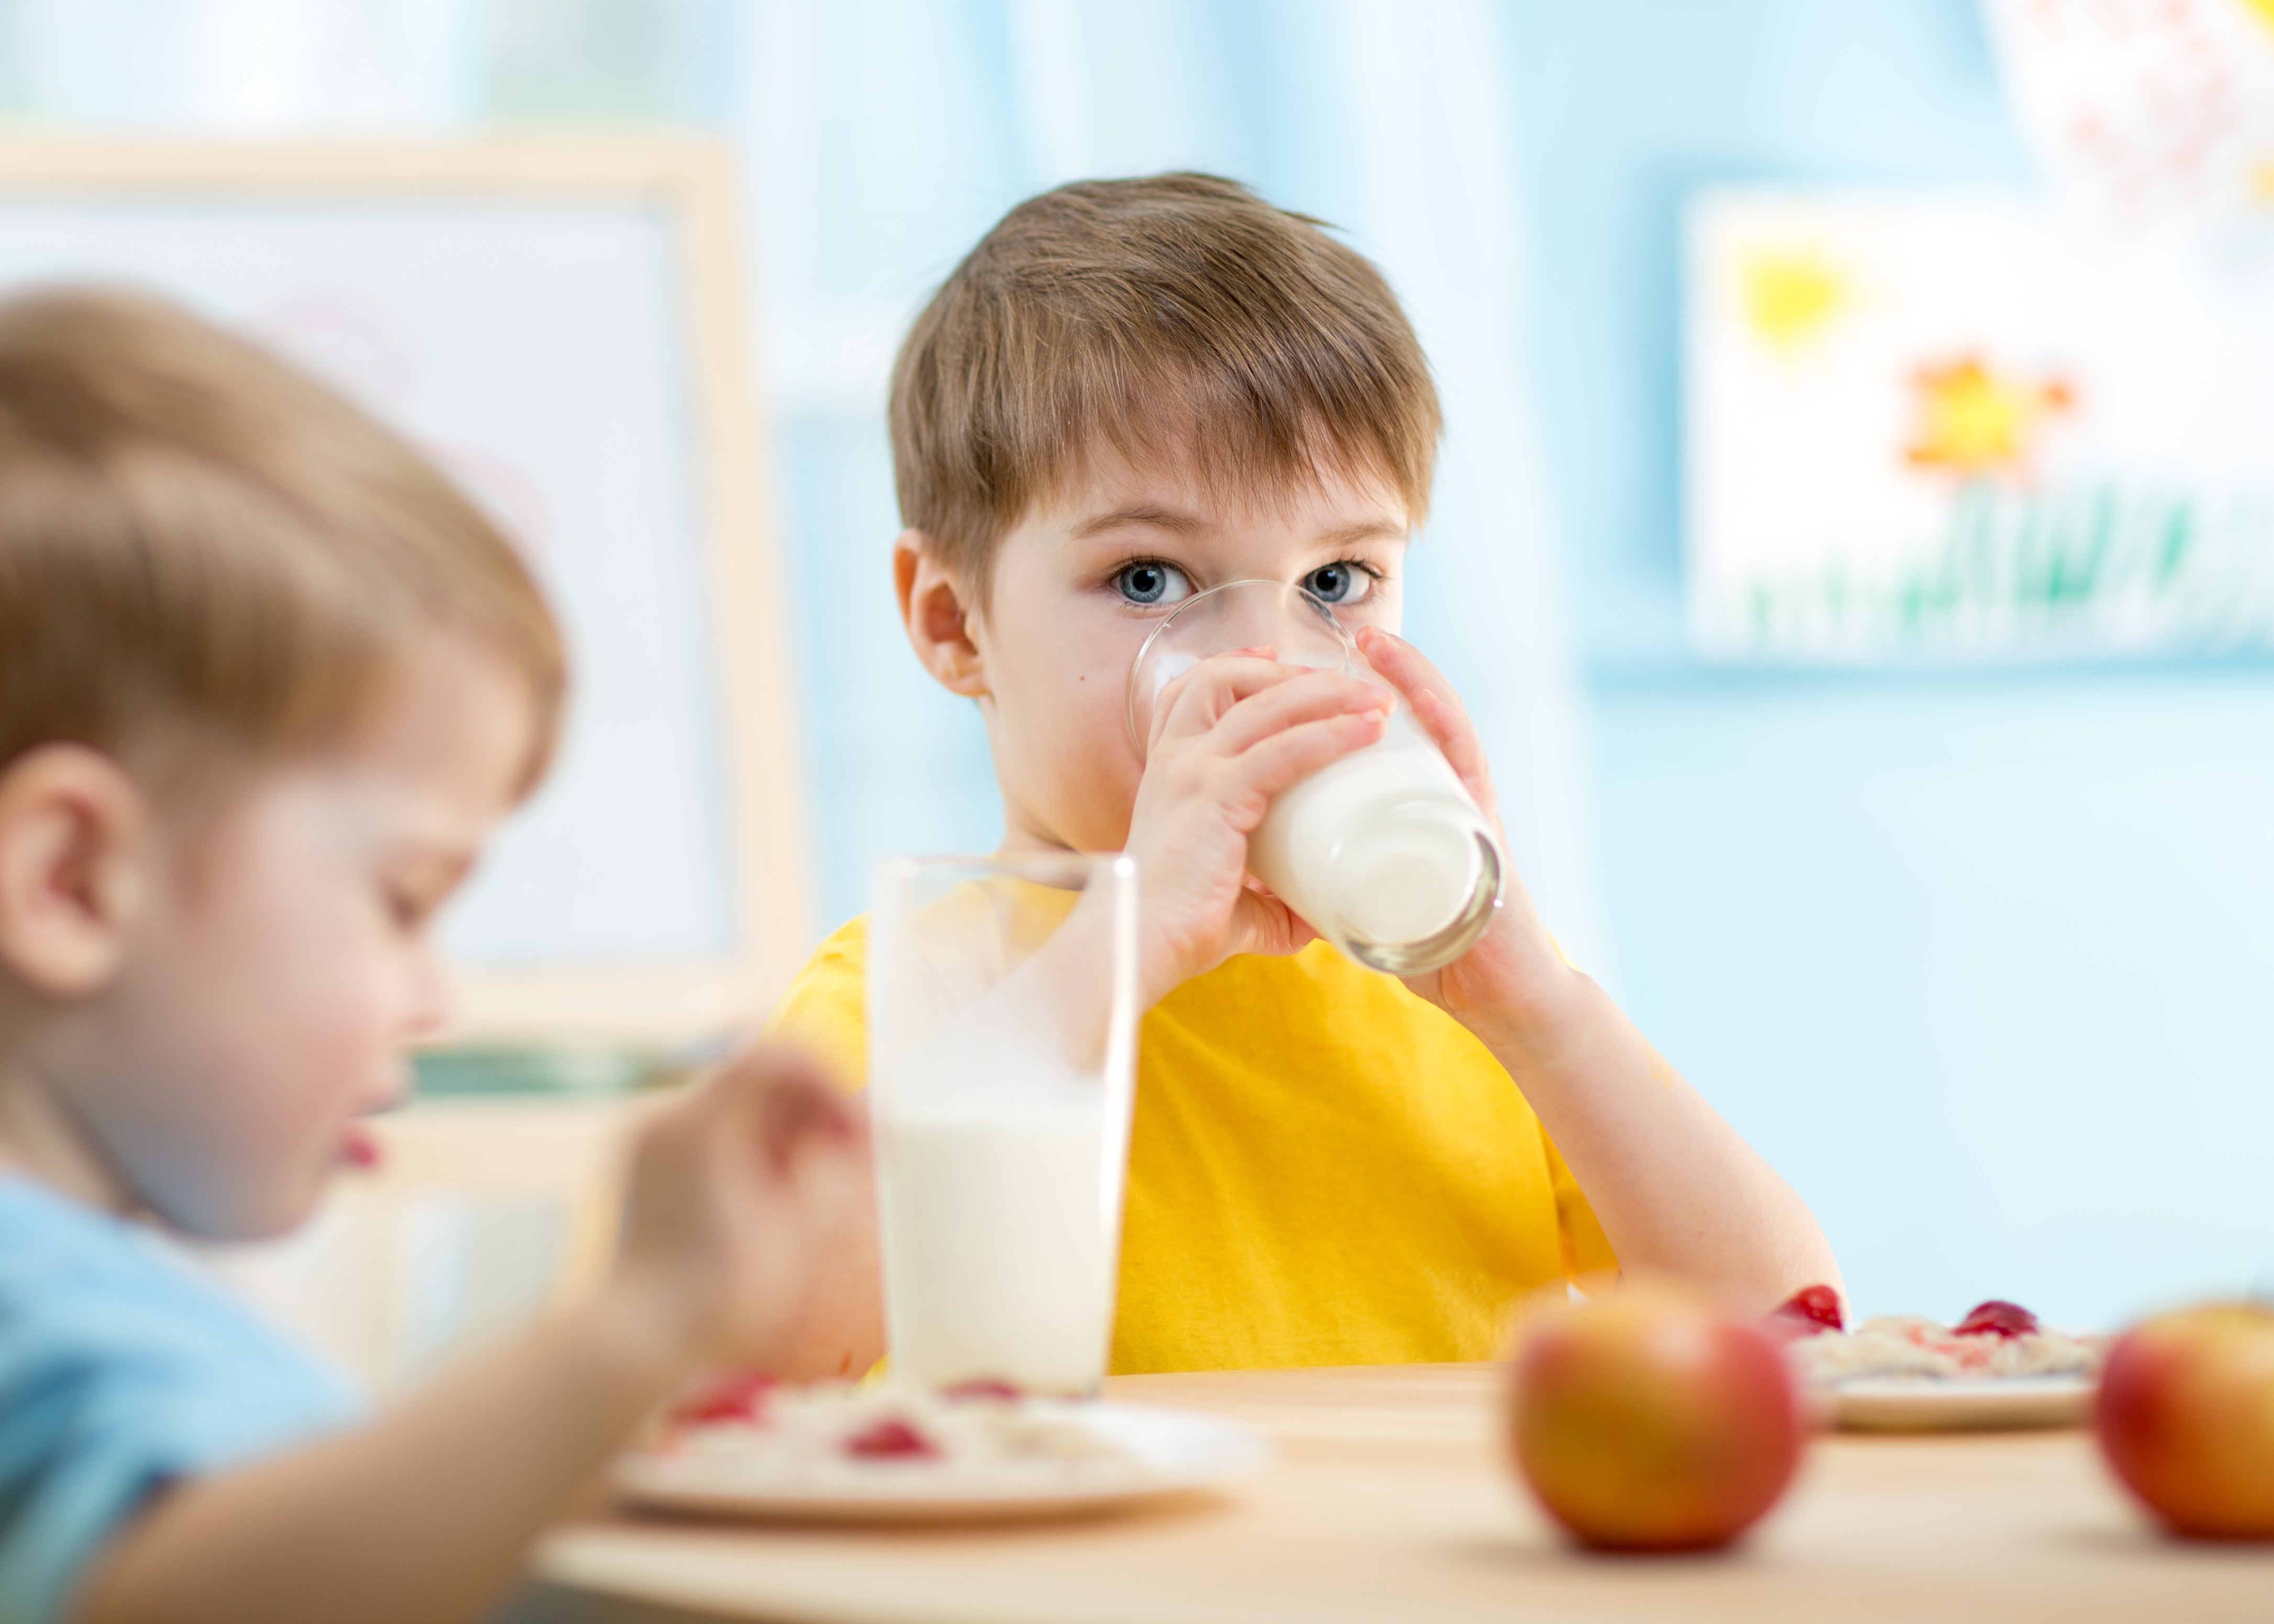 Morning milk for toddlers: How to get kids excited to drink their milk